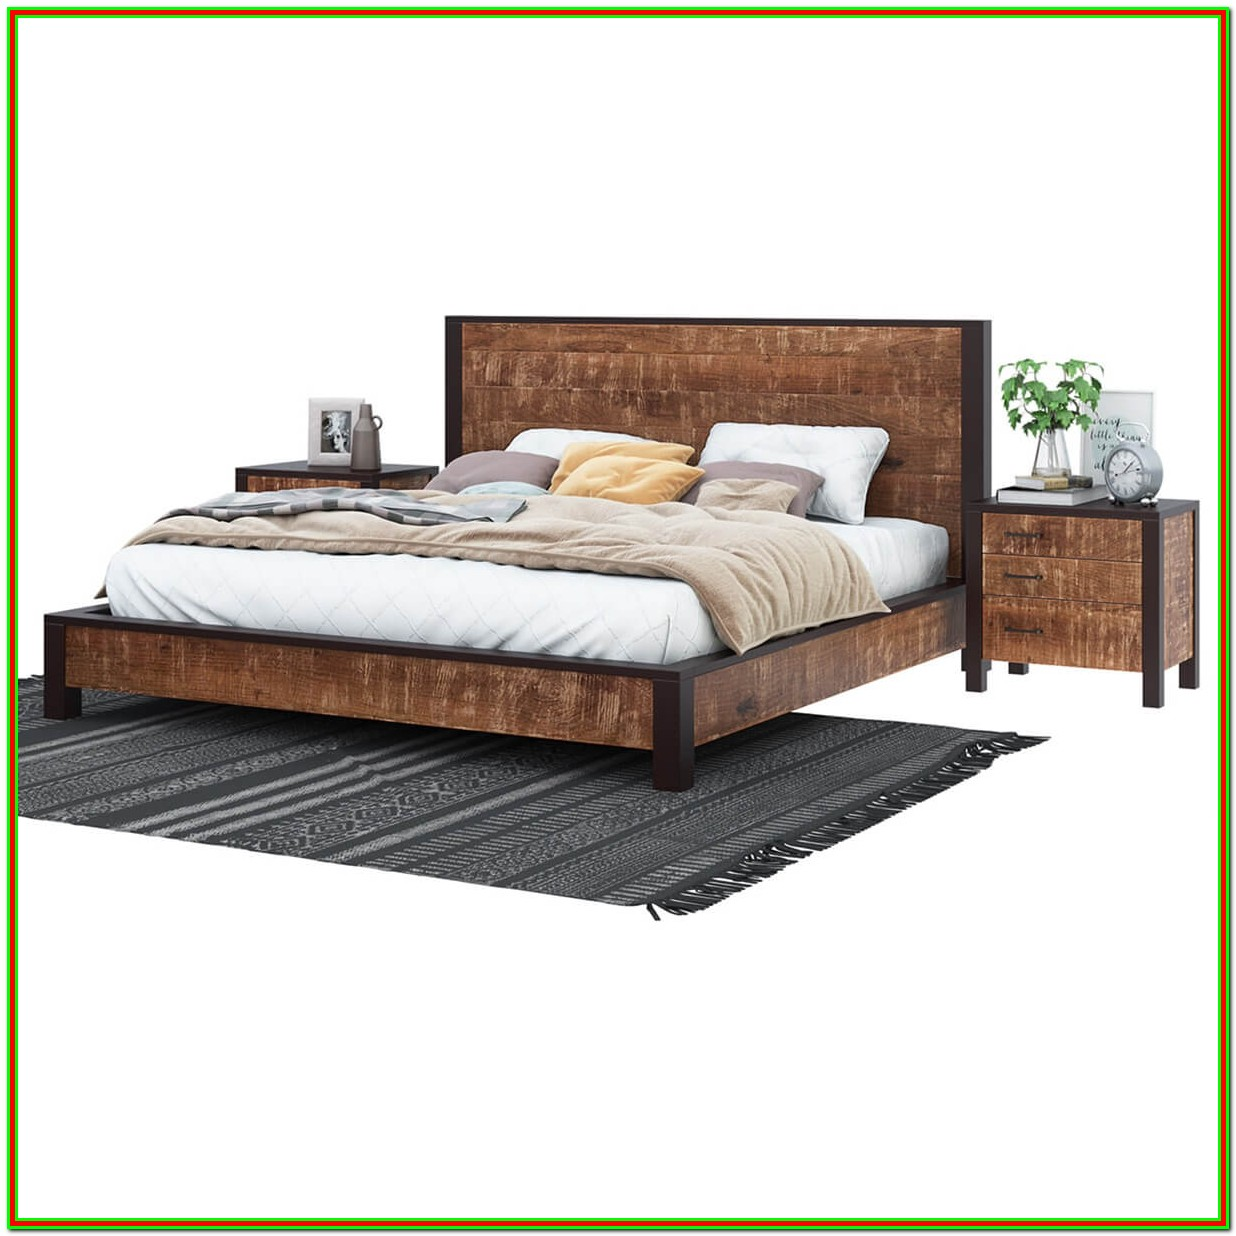 Platform Bed Frame With Headboard And Footboard